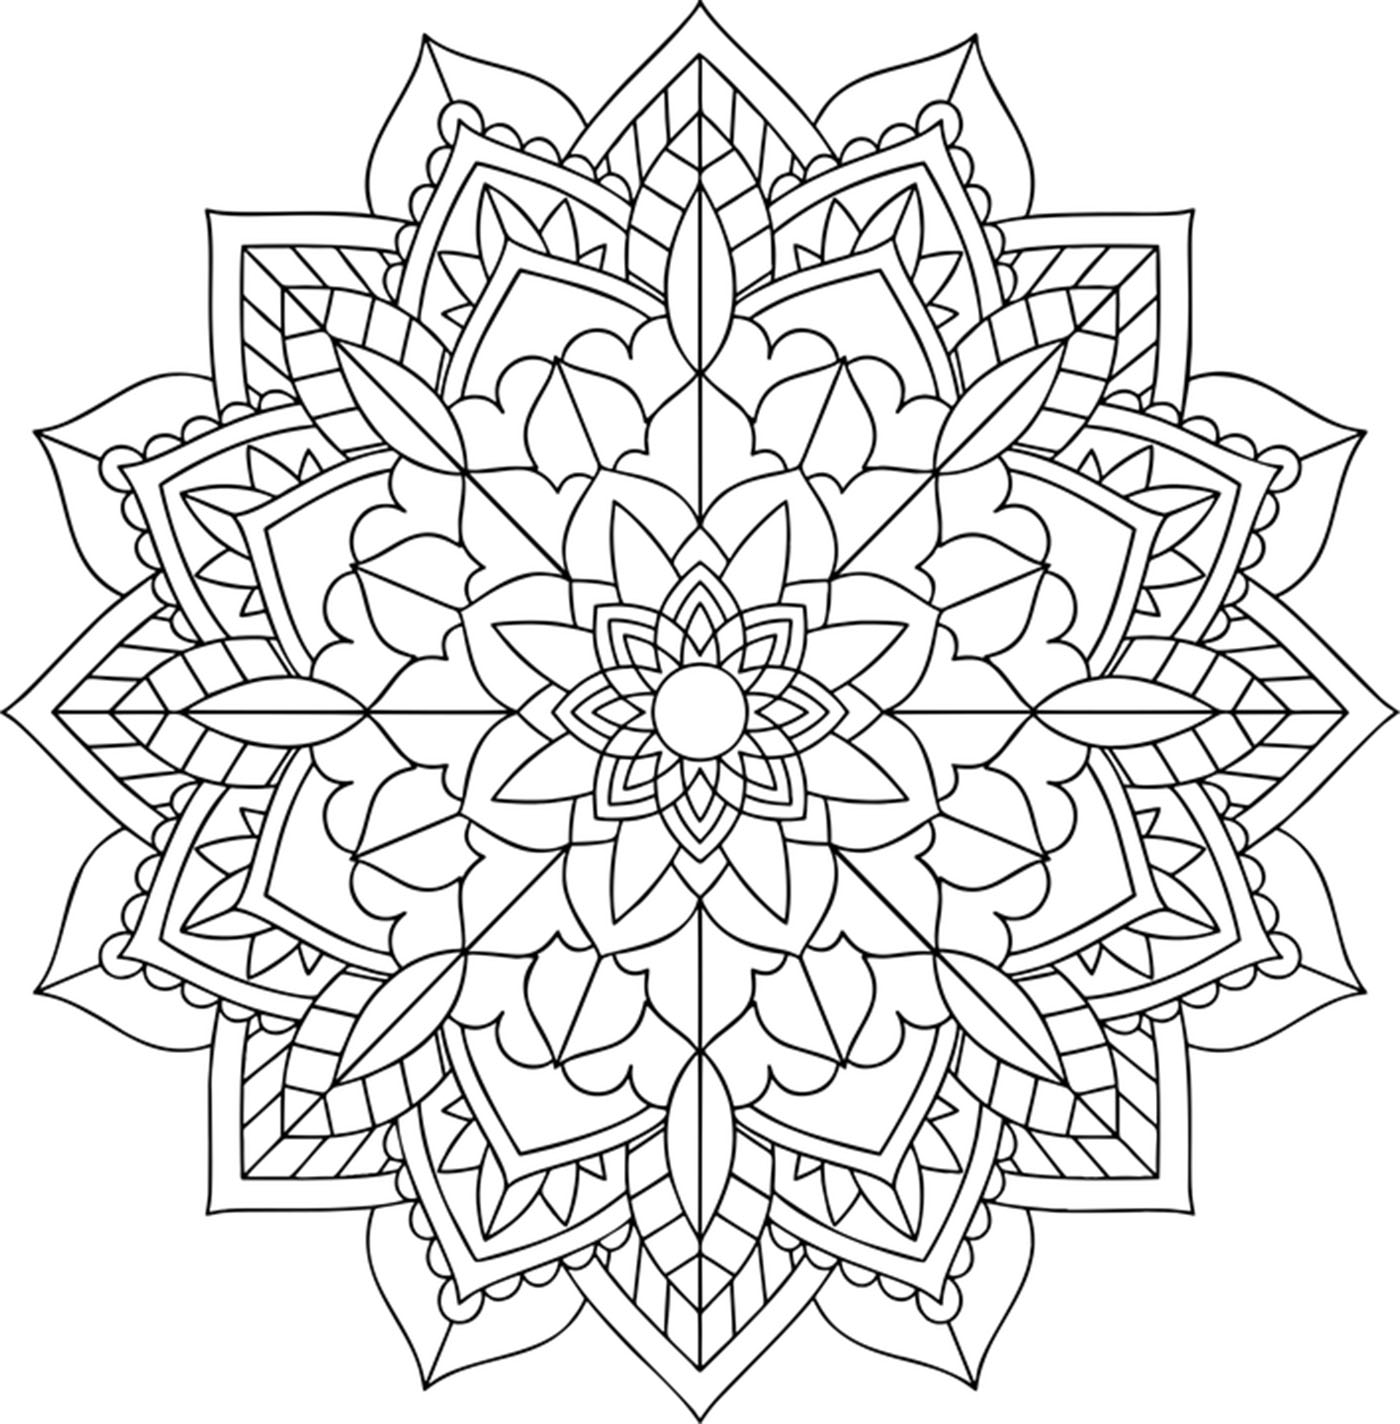 This floral Mandala is perfect if you want to take time to color, be relaxed and calm ... and feel all the benefits of coloring.